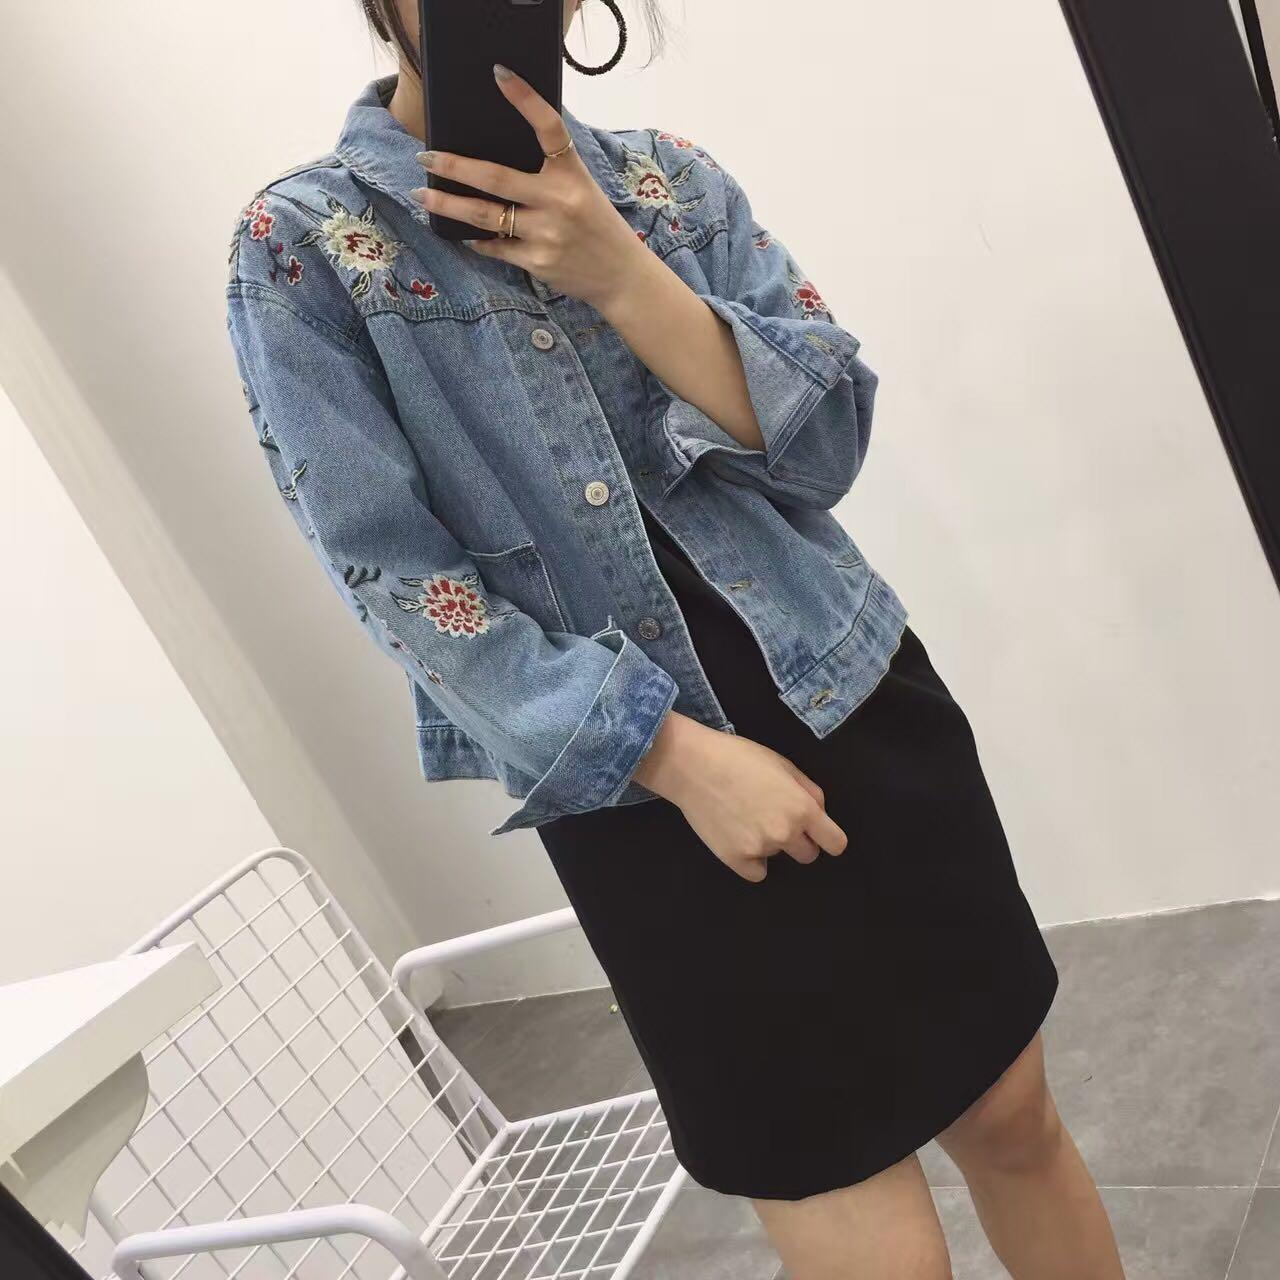 Retro South Korea CHIC-Style Exquisite Embroidery Flowers Loose-Fit Washing Light Blue Jeans Coat Women's 9908